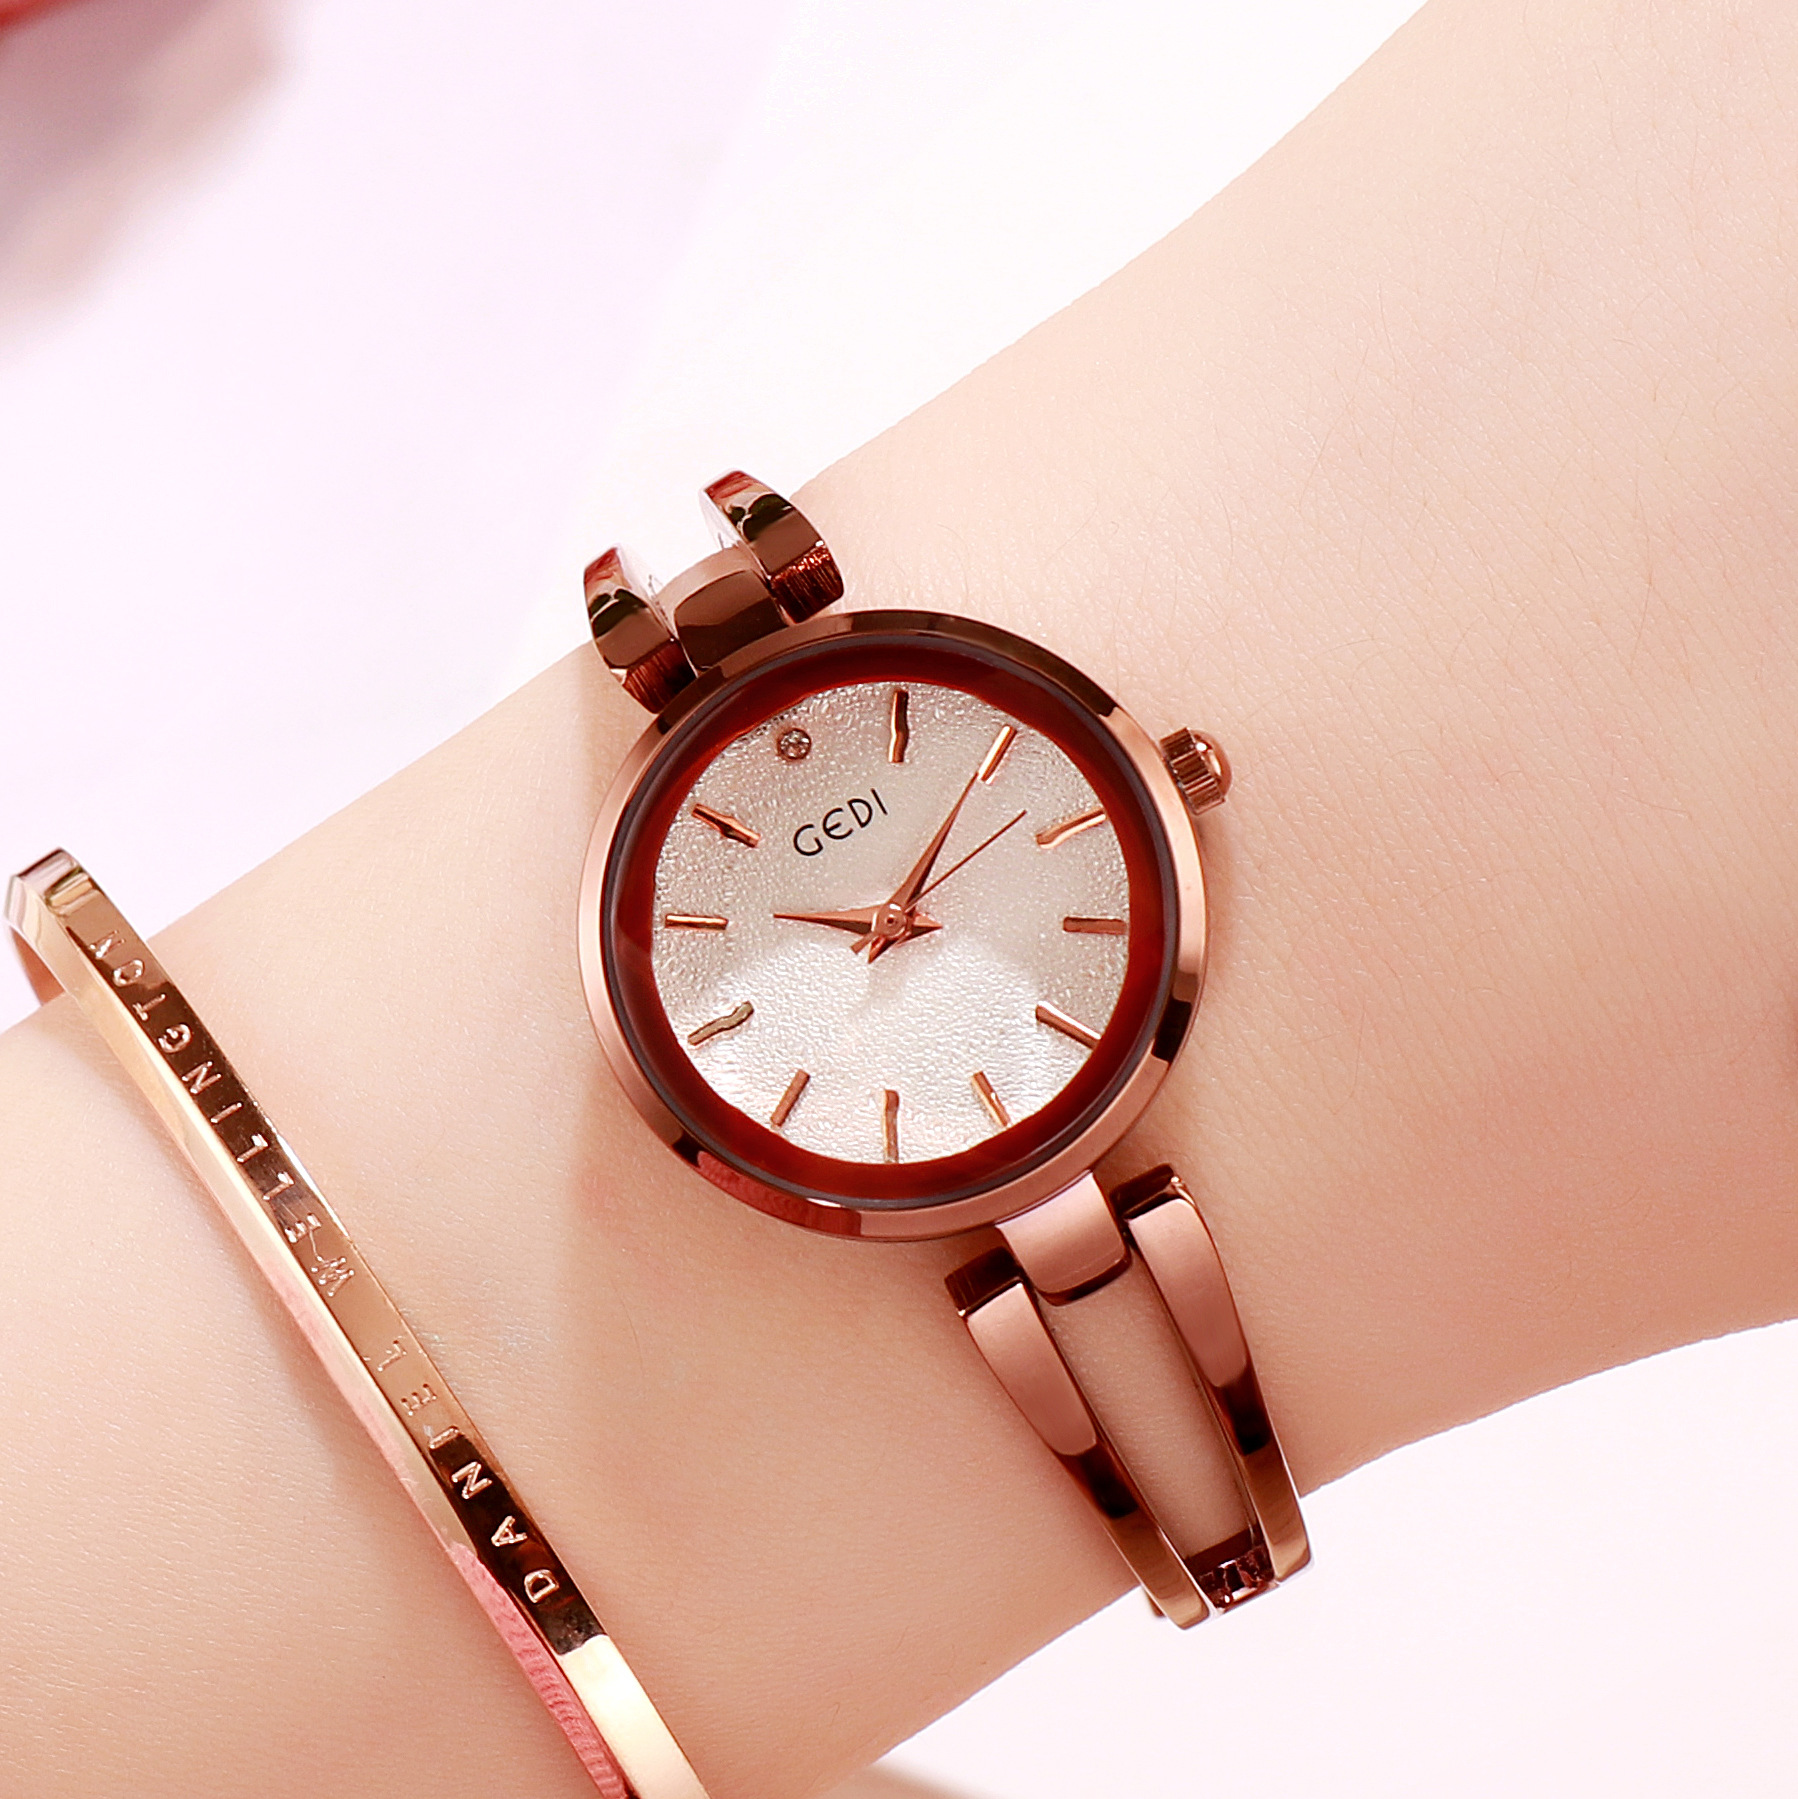 Women Stainless Steel Waterproof Bracelet Watch with Spiral Case for Casual Office  Coffee color shell white dial